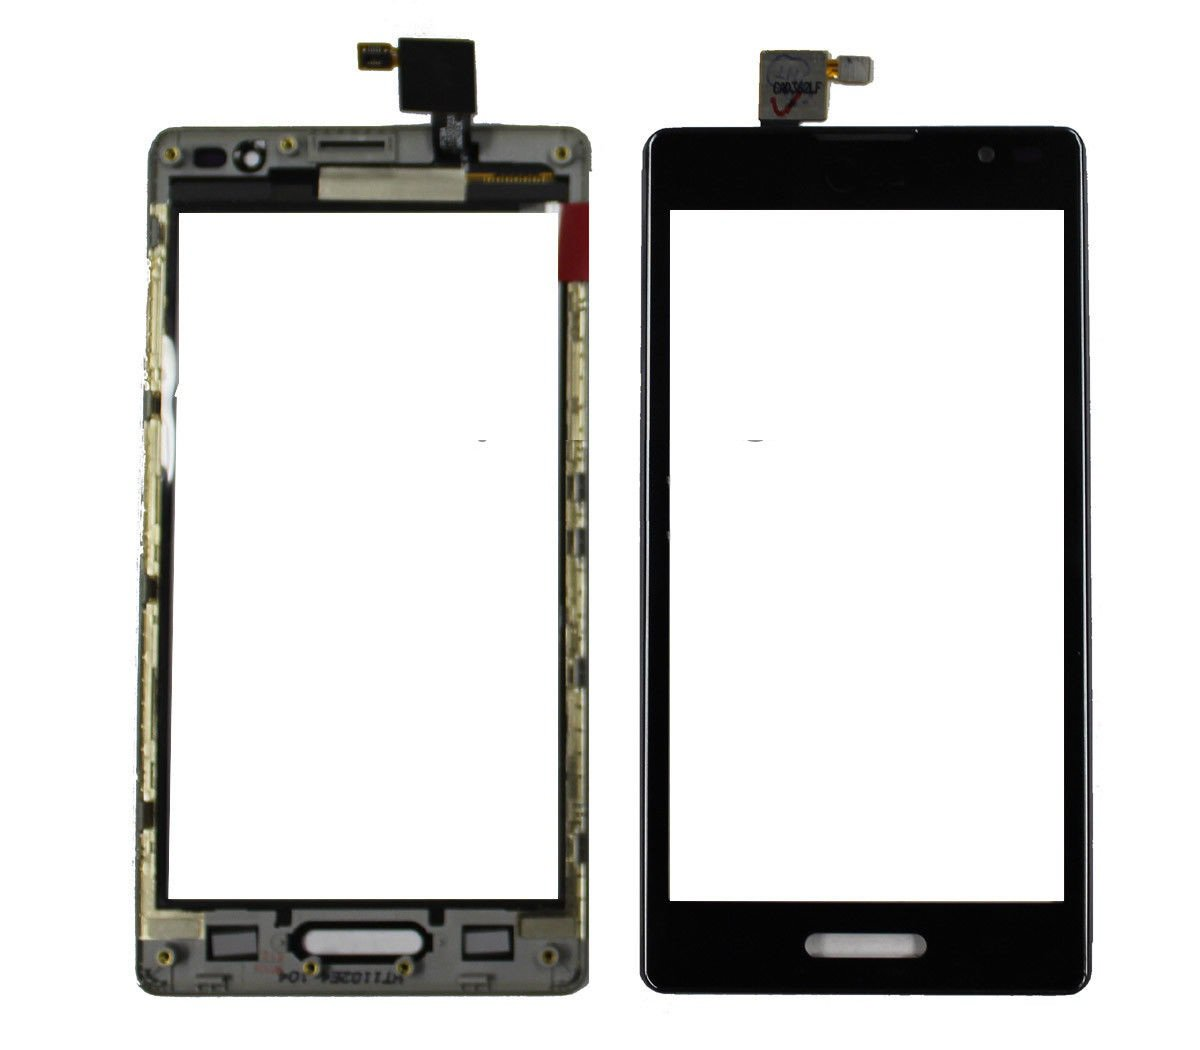 New Touch Screen Glass Digitizer Lens Replacement For LG Optimus L9 P760 Black